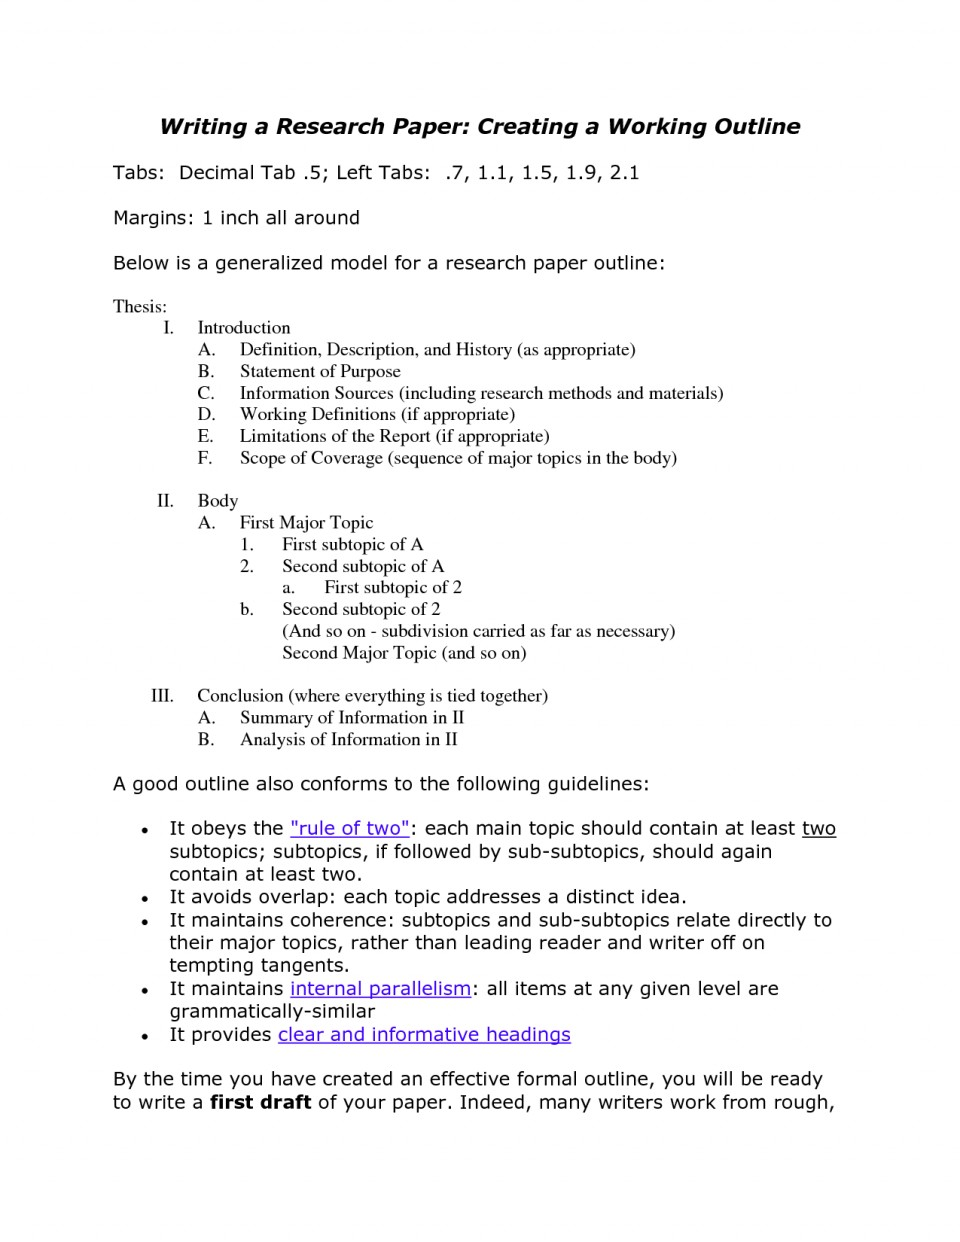 006 Working Outline For Research Paper Example 477670 Top Formal How To Write A Template 960